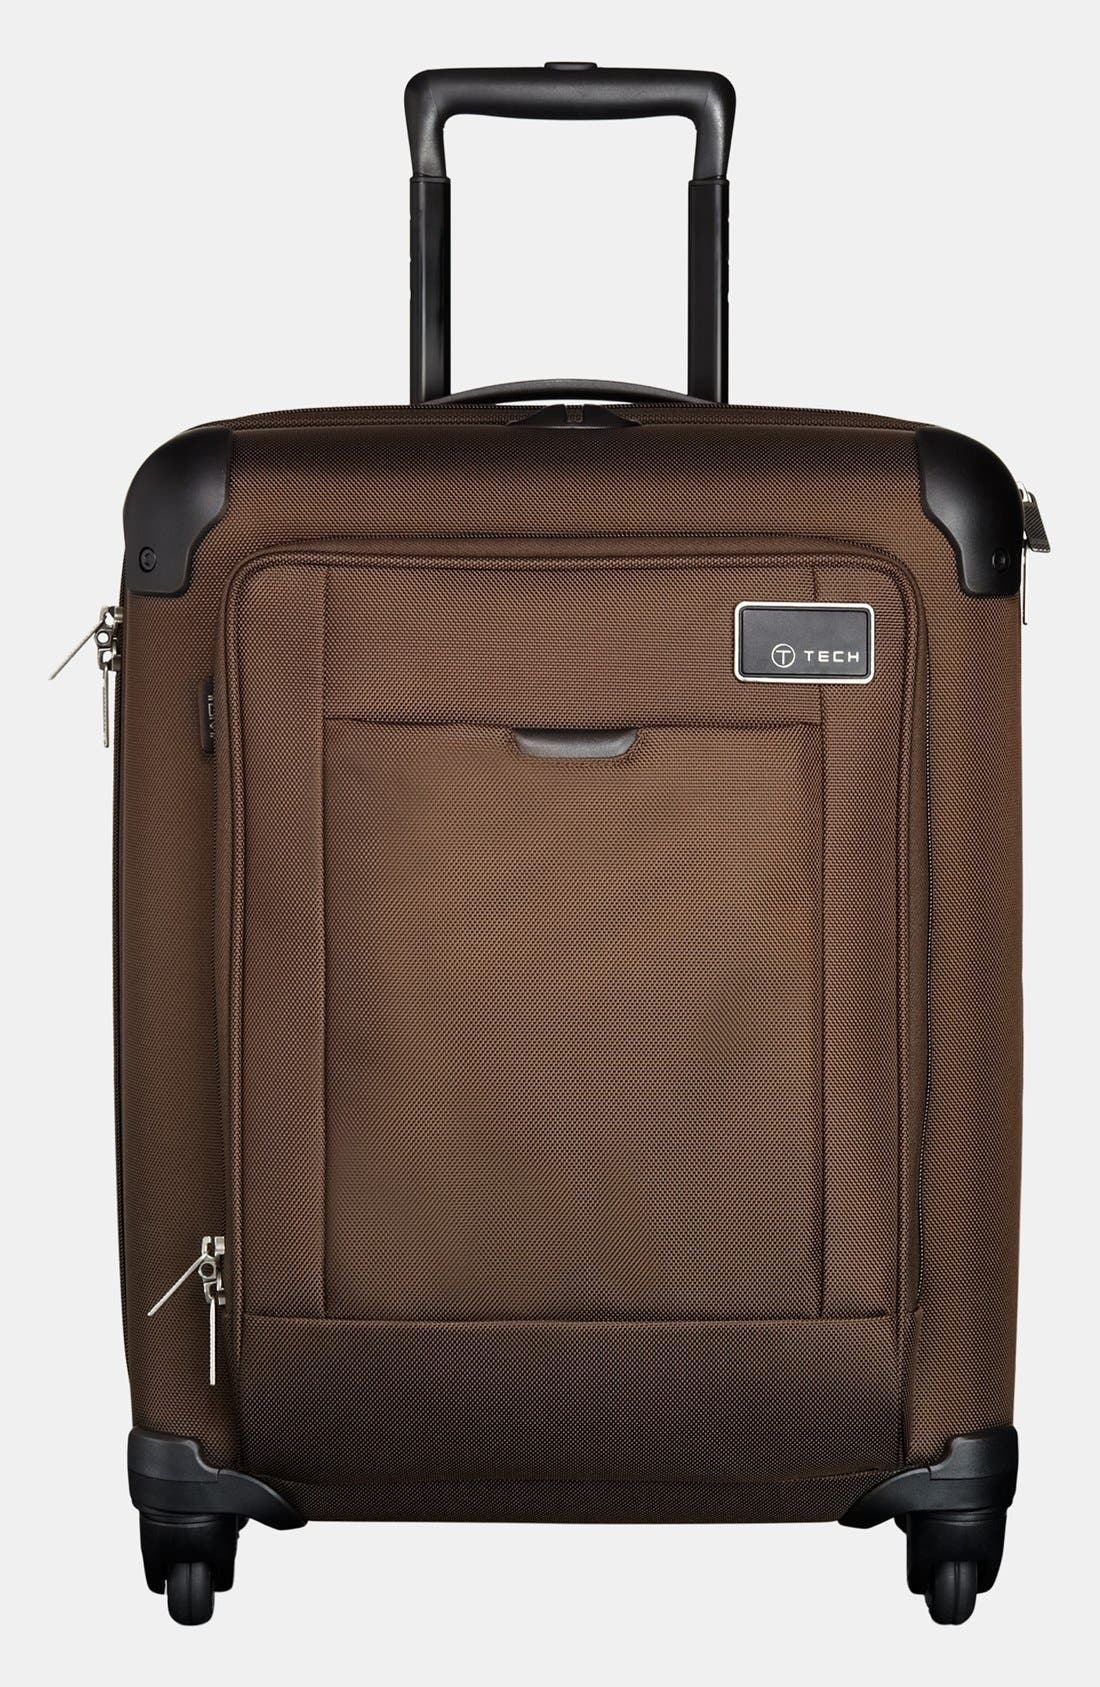 Alternate Image 1 Selected - Tumi 'T-Tech Network' Lightweight Wheeled Continental Carry On (22 Inch)